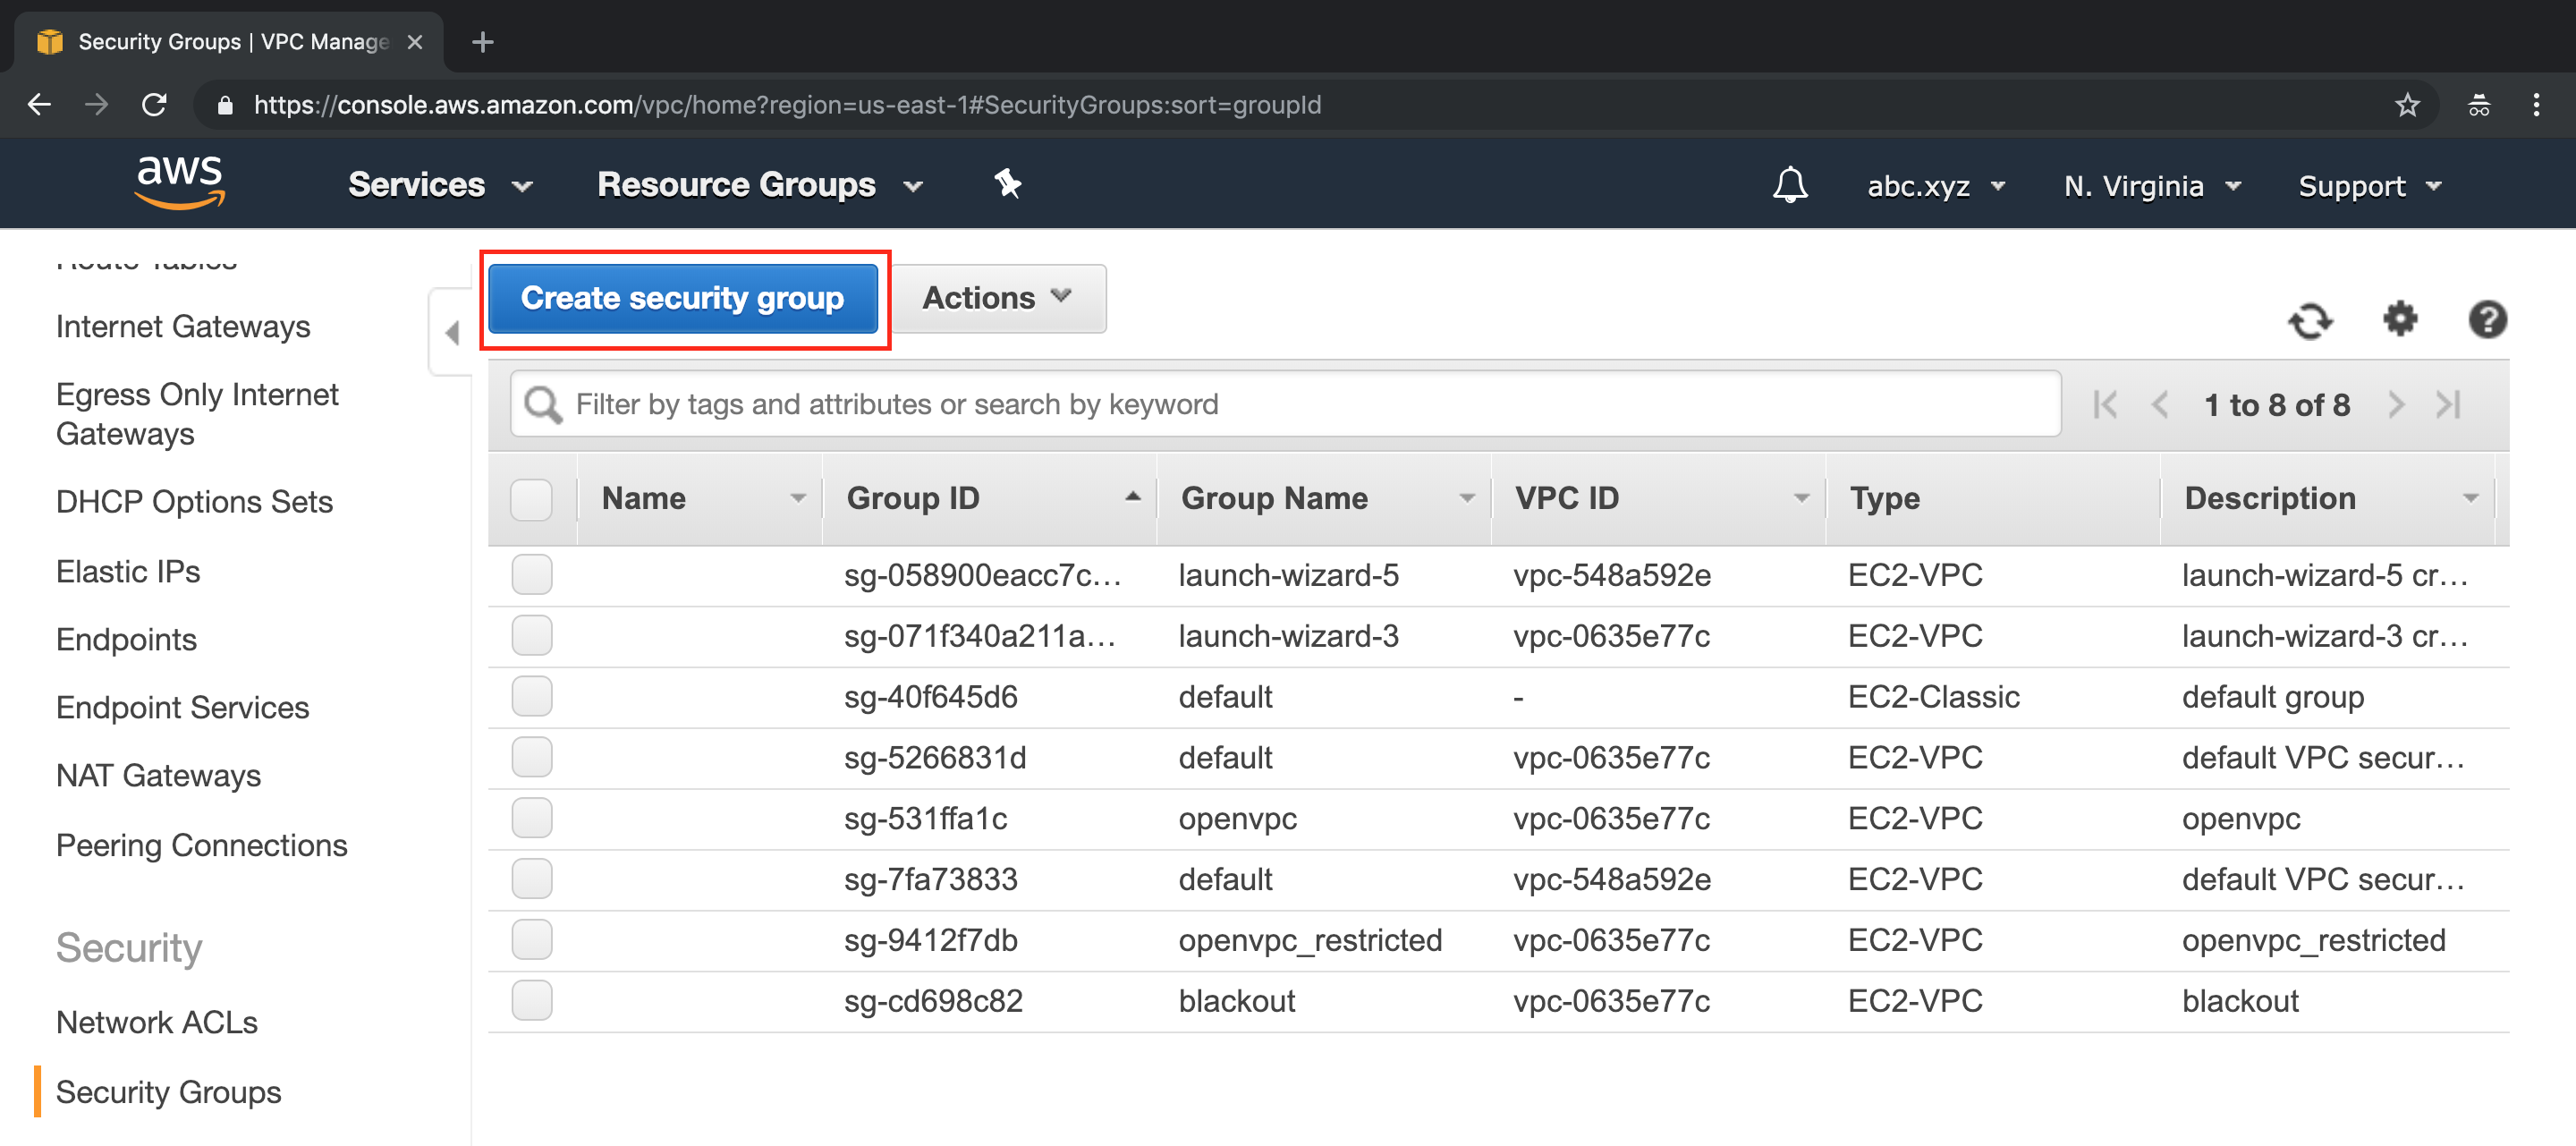 A screen capture showing the Create security group window on the AWS Console